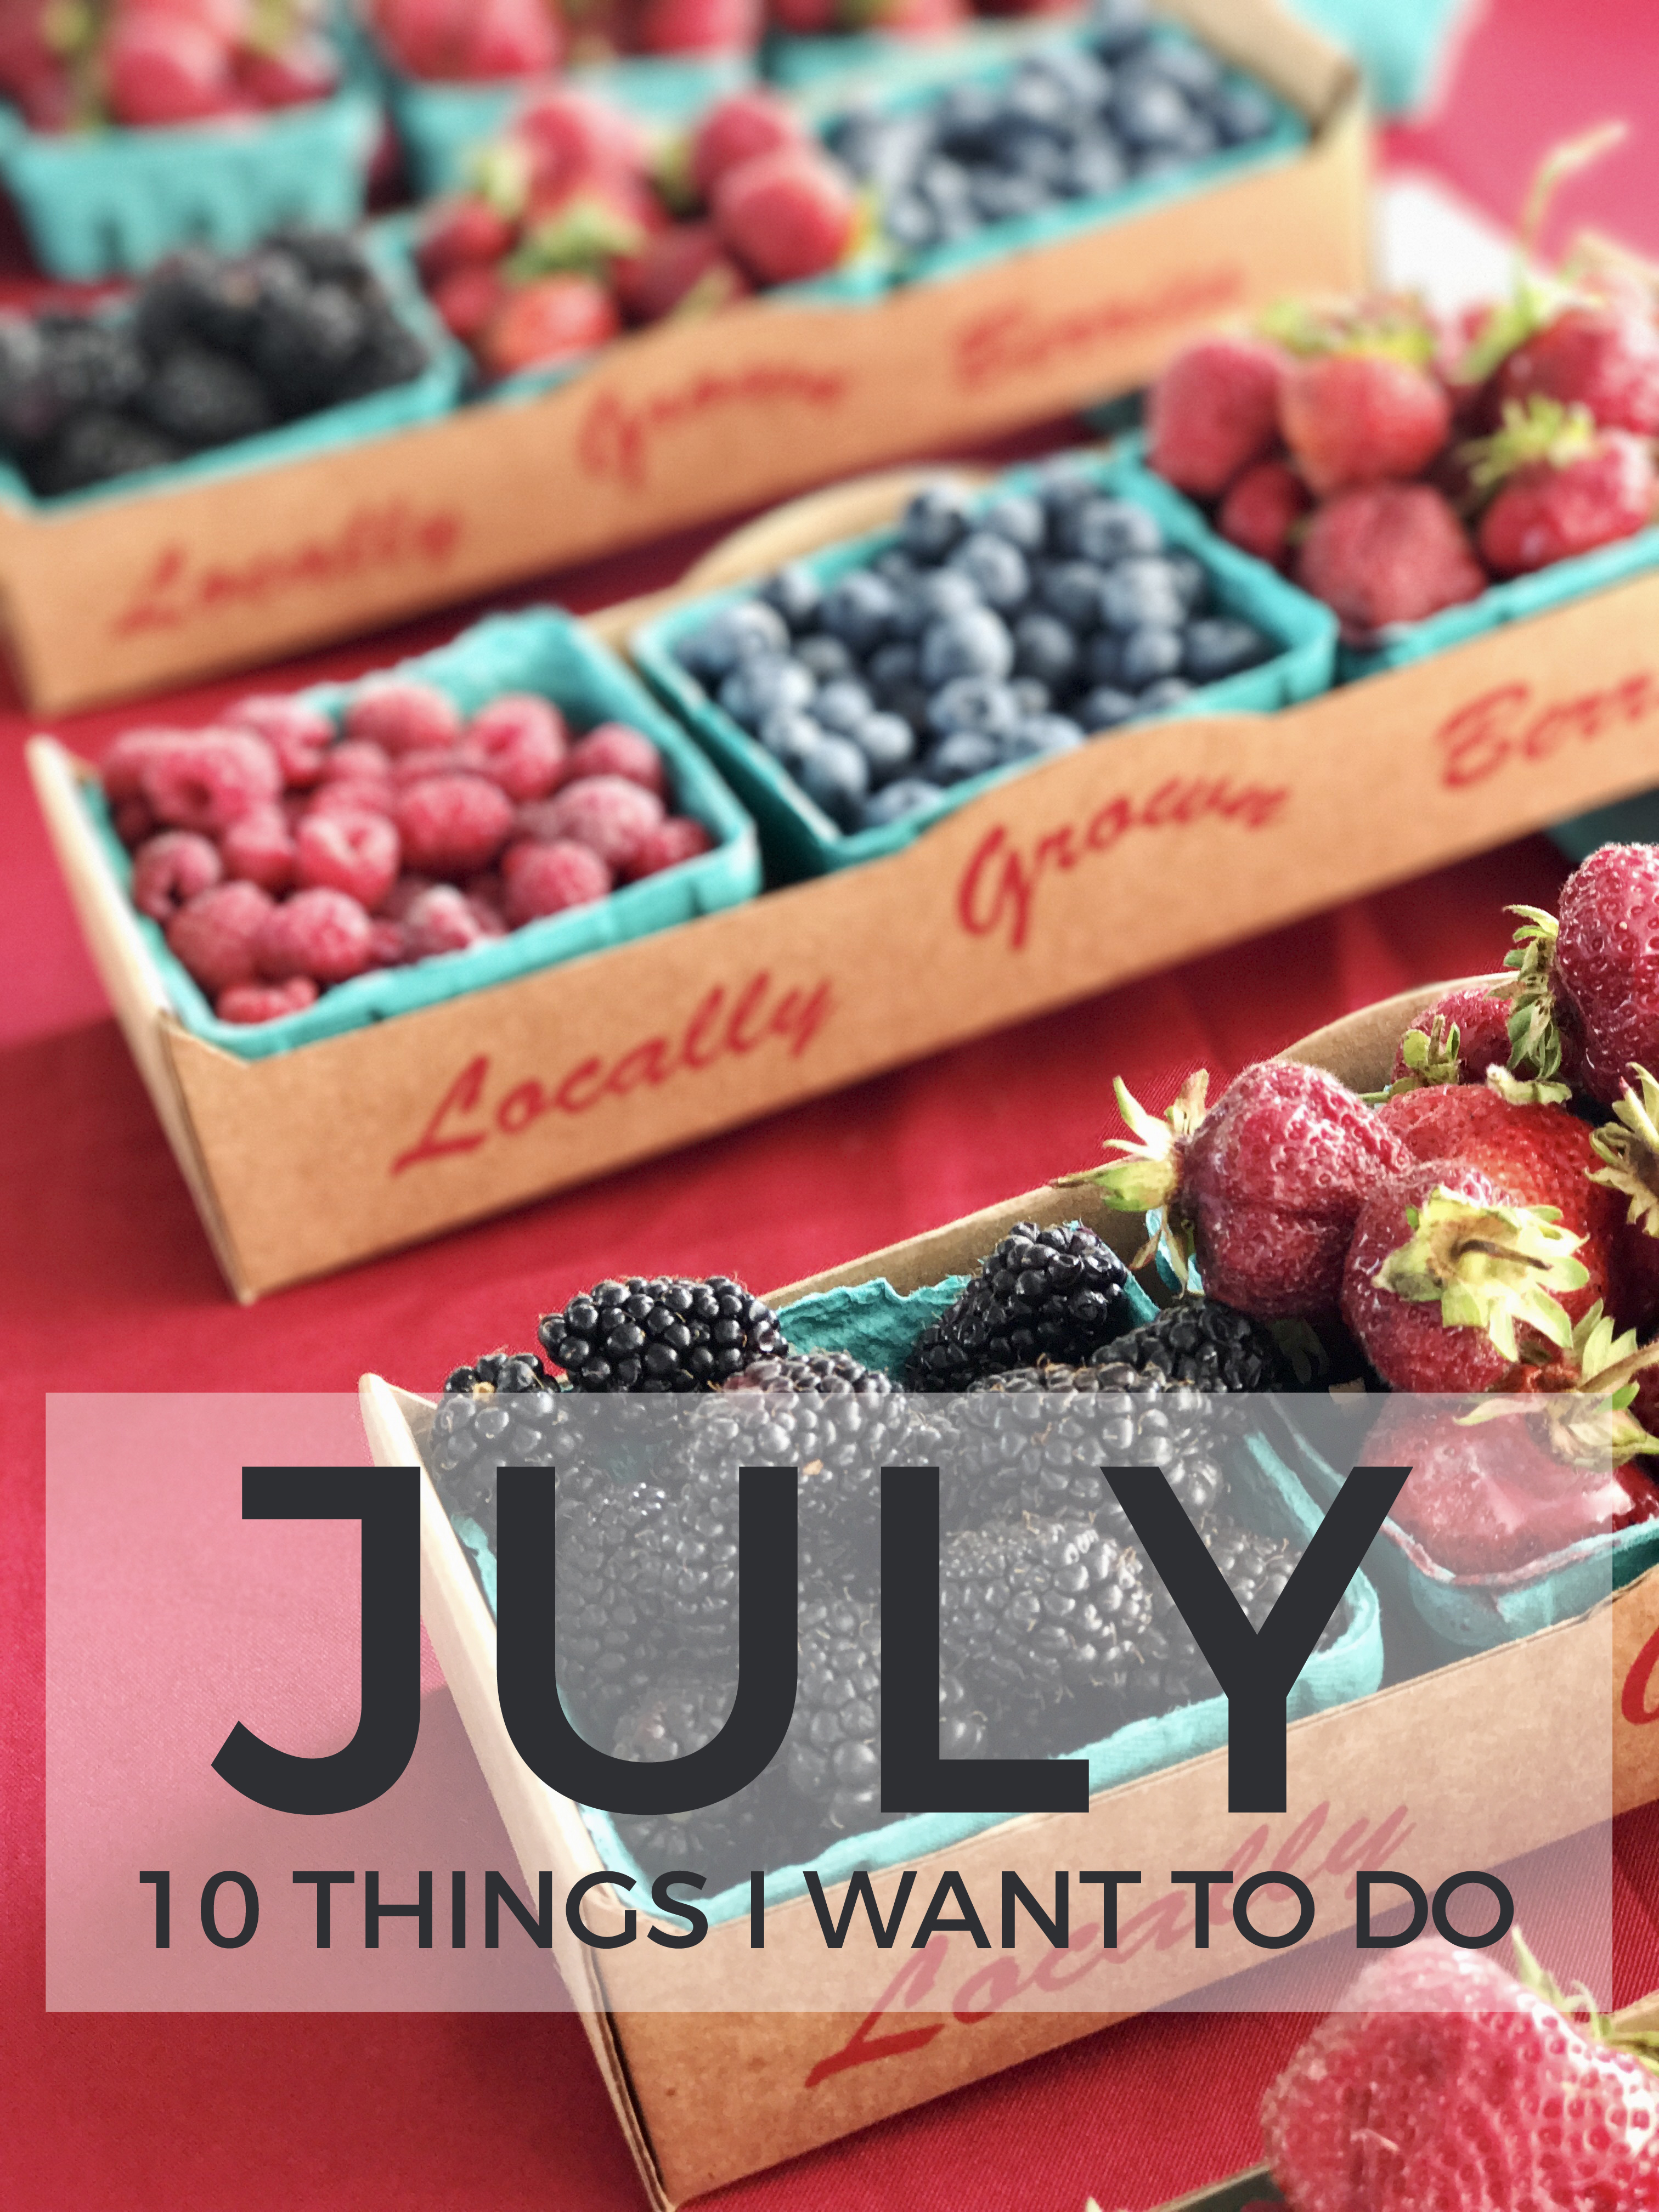 10 things i want to do in july | via Finding Beautiful Truth